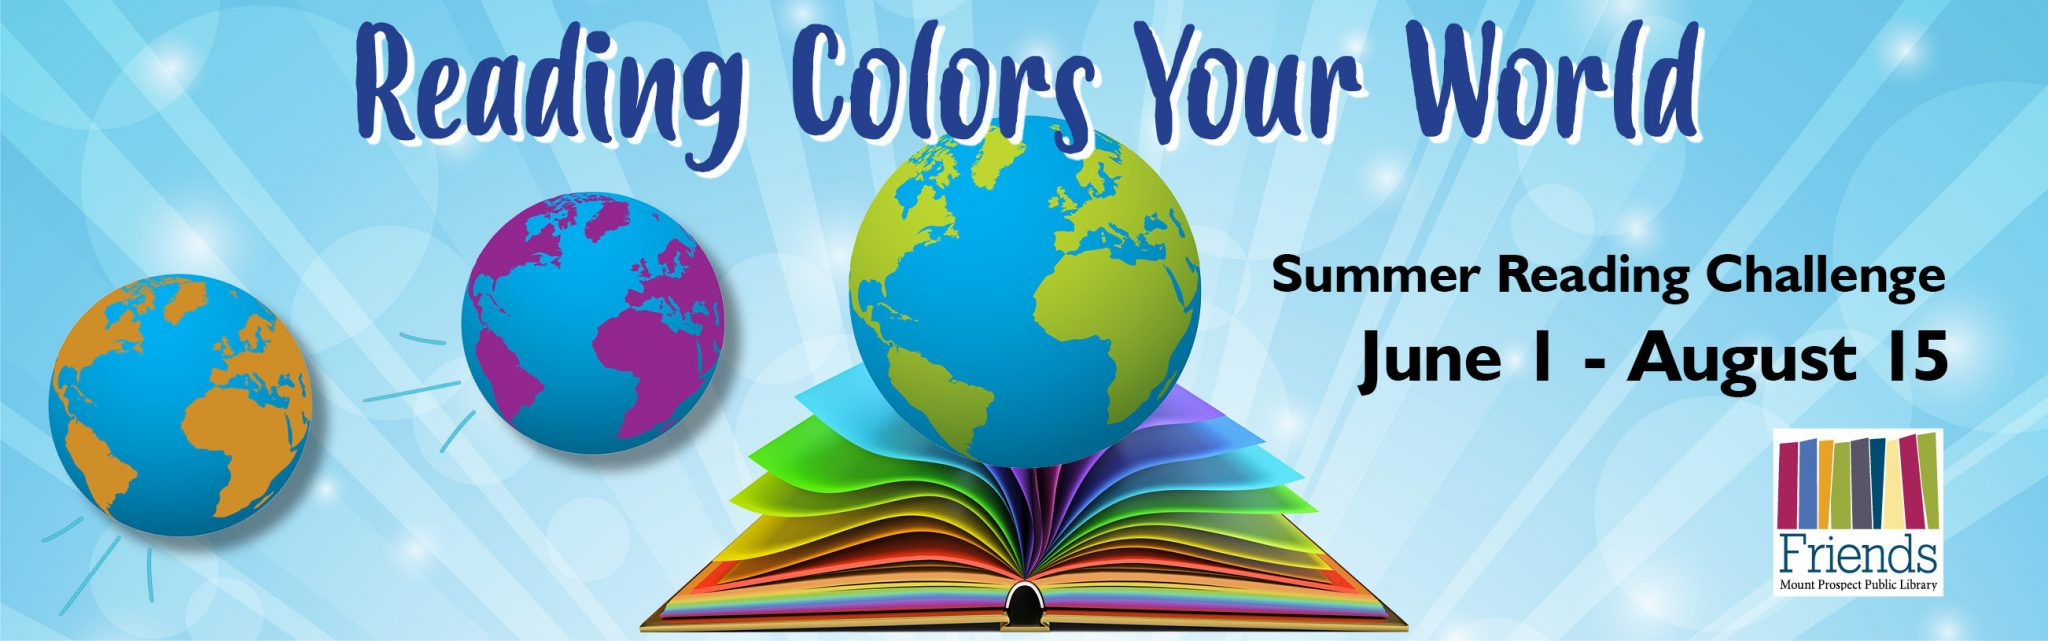 Summer Reading Challenge: Reading Colors Your World, June first through August fifteenth